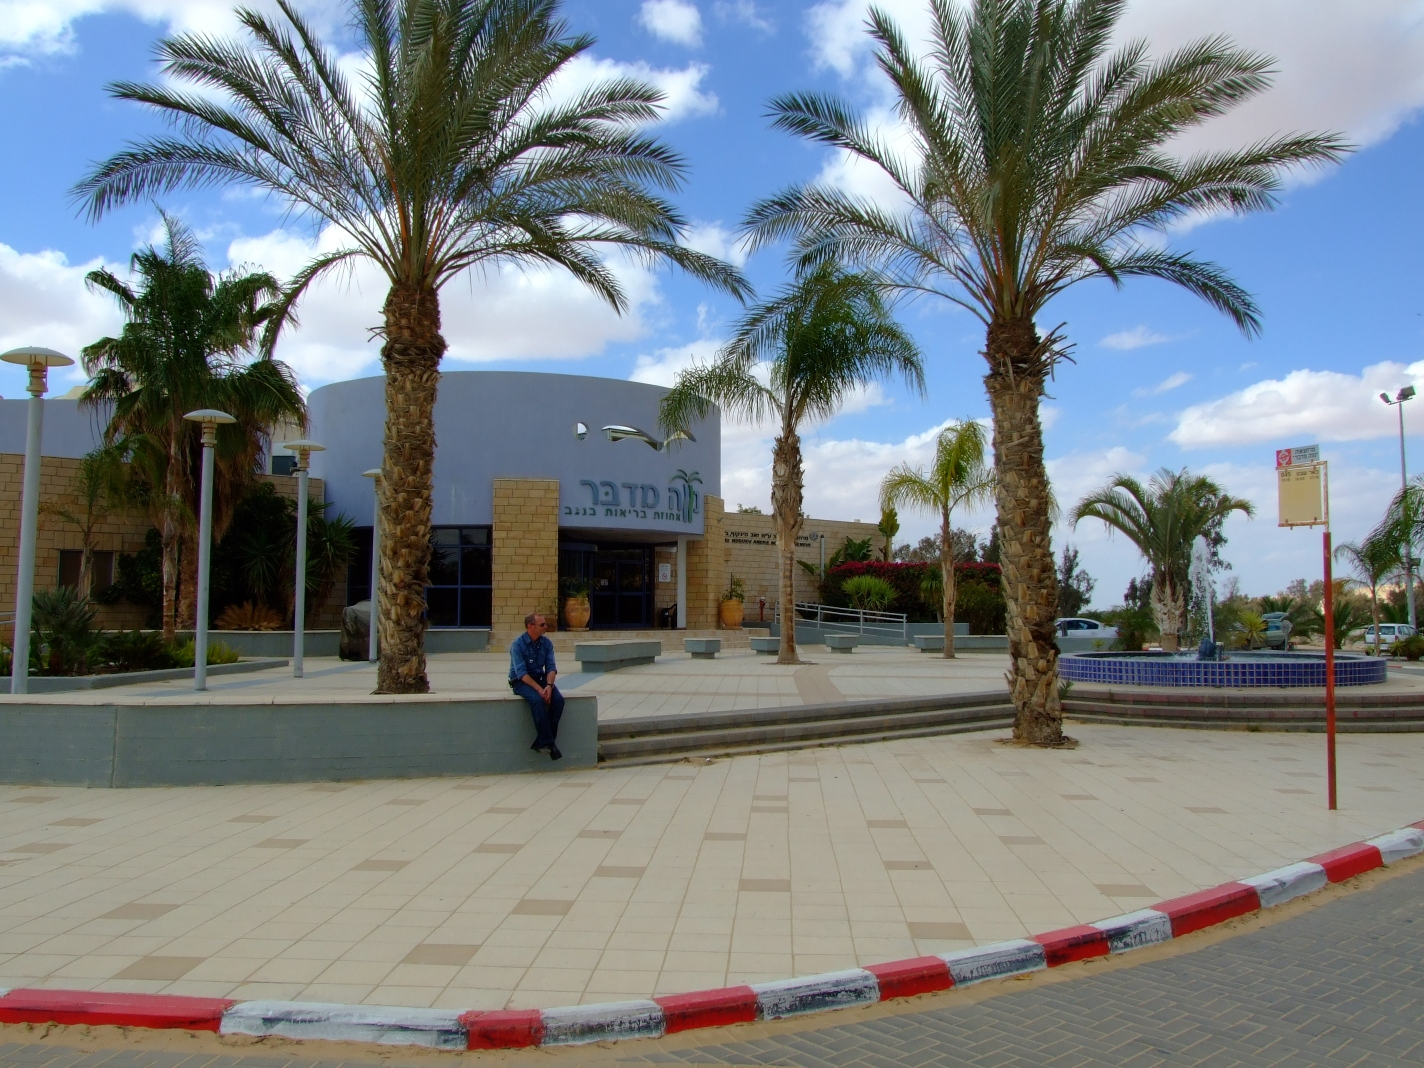 Asluj PS - عسلوج  : A spa nearby. The fee is NIS 59, and it was raised after Bedouins started visiting it. It's NIS 30 if you show an ID that you live nearby, unless you are Bedouin.